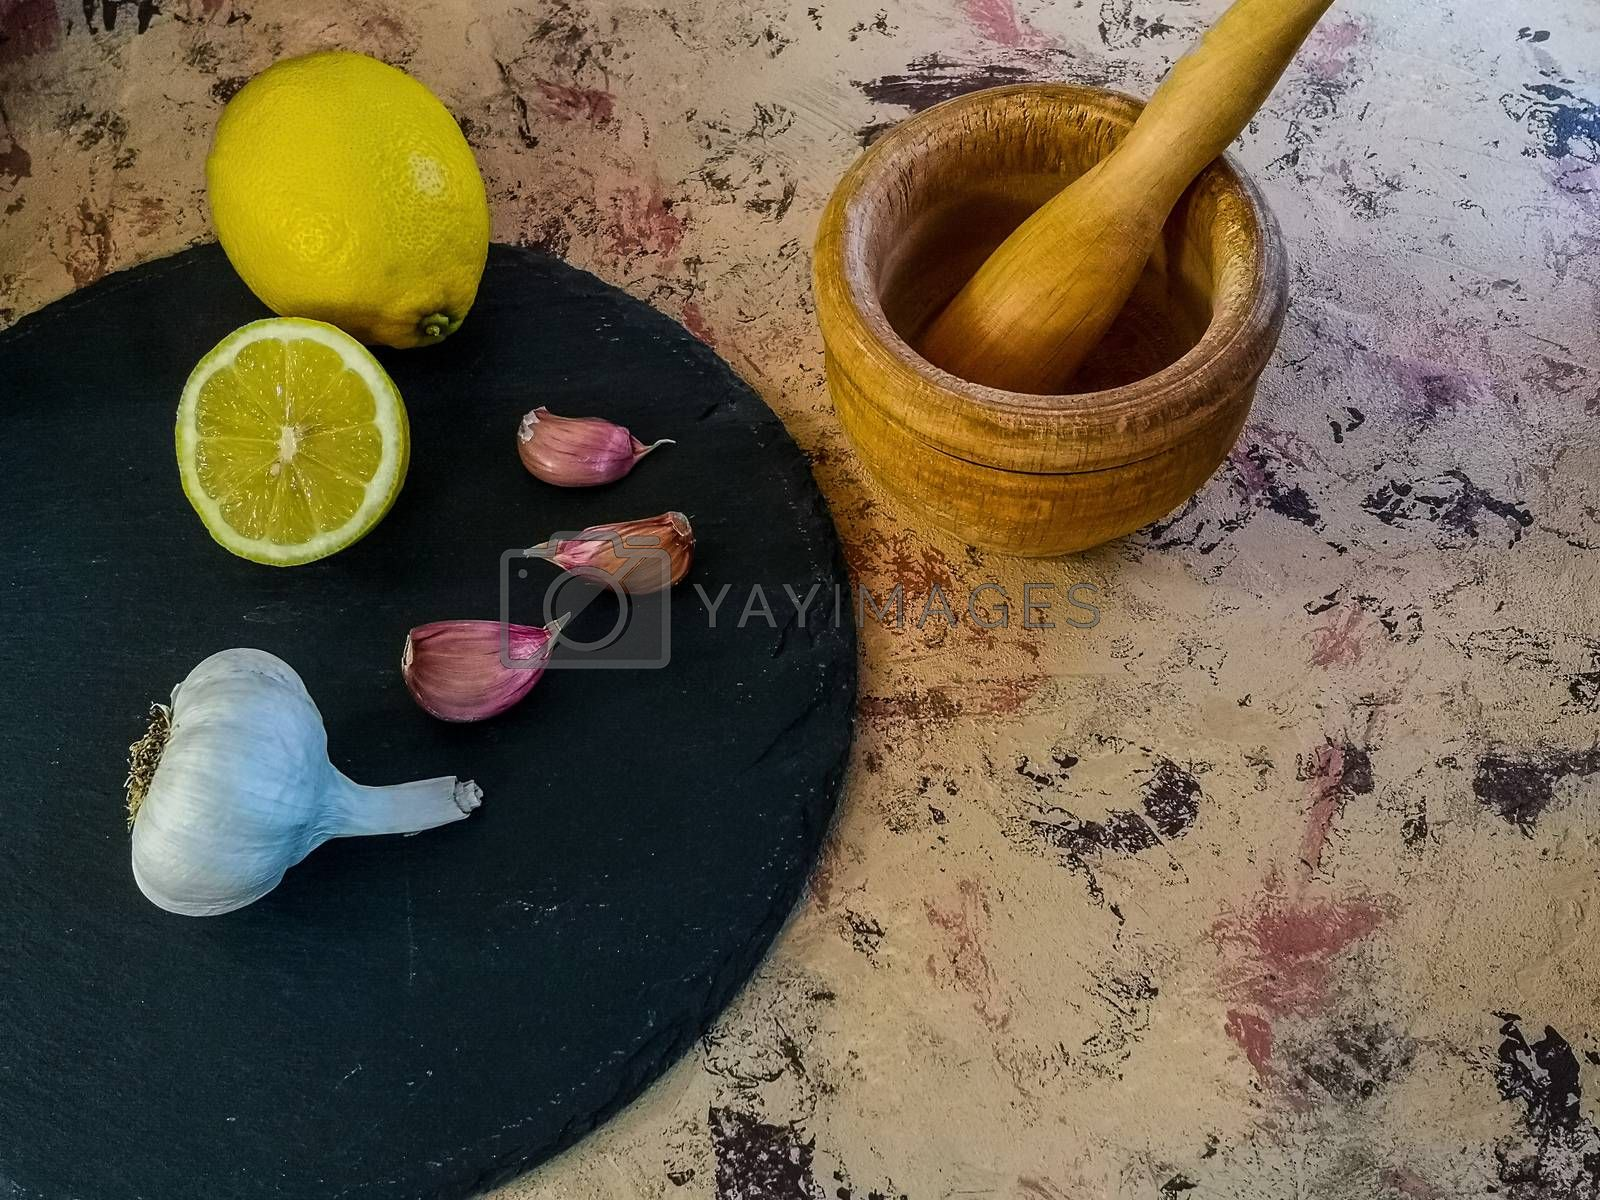 Ingredients and utensils to make mayonnaise with garlic in composition on light background